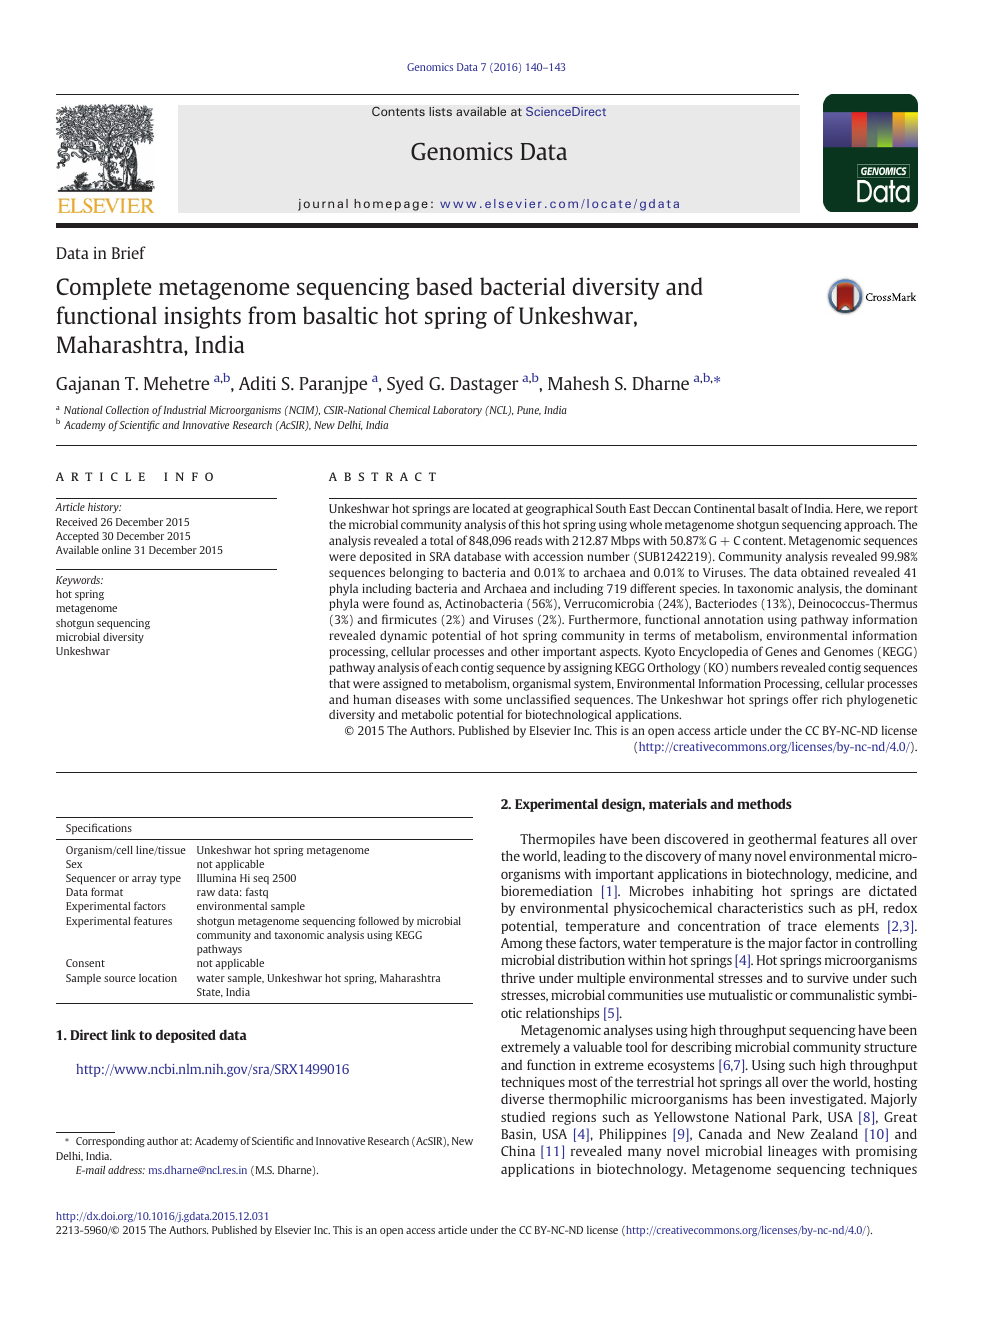 Complete metagenome sequencing based bacterial diversity and